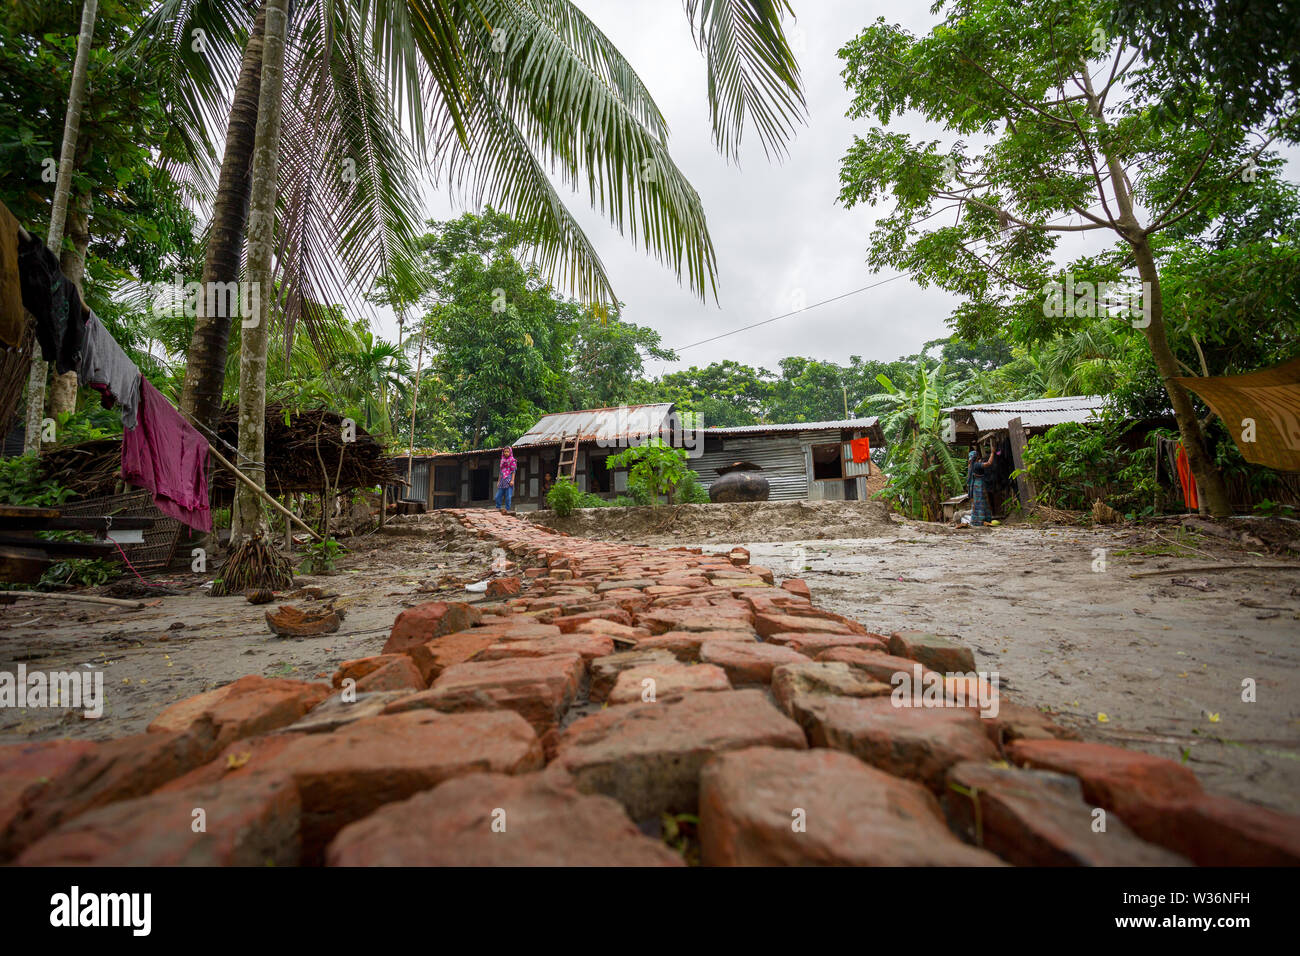 Bangladesh – June 27, 2015: A destroyed home due to river erosion at Rasulpur, Barisal District. - Stock Image